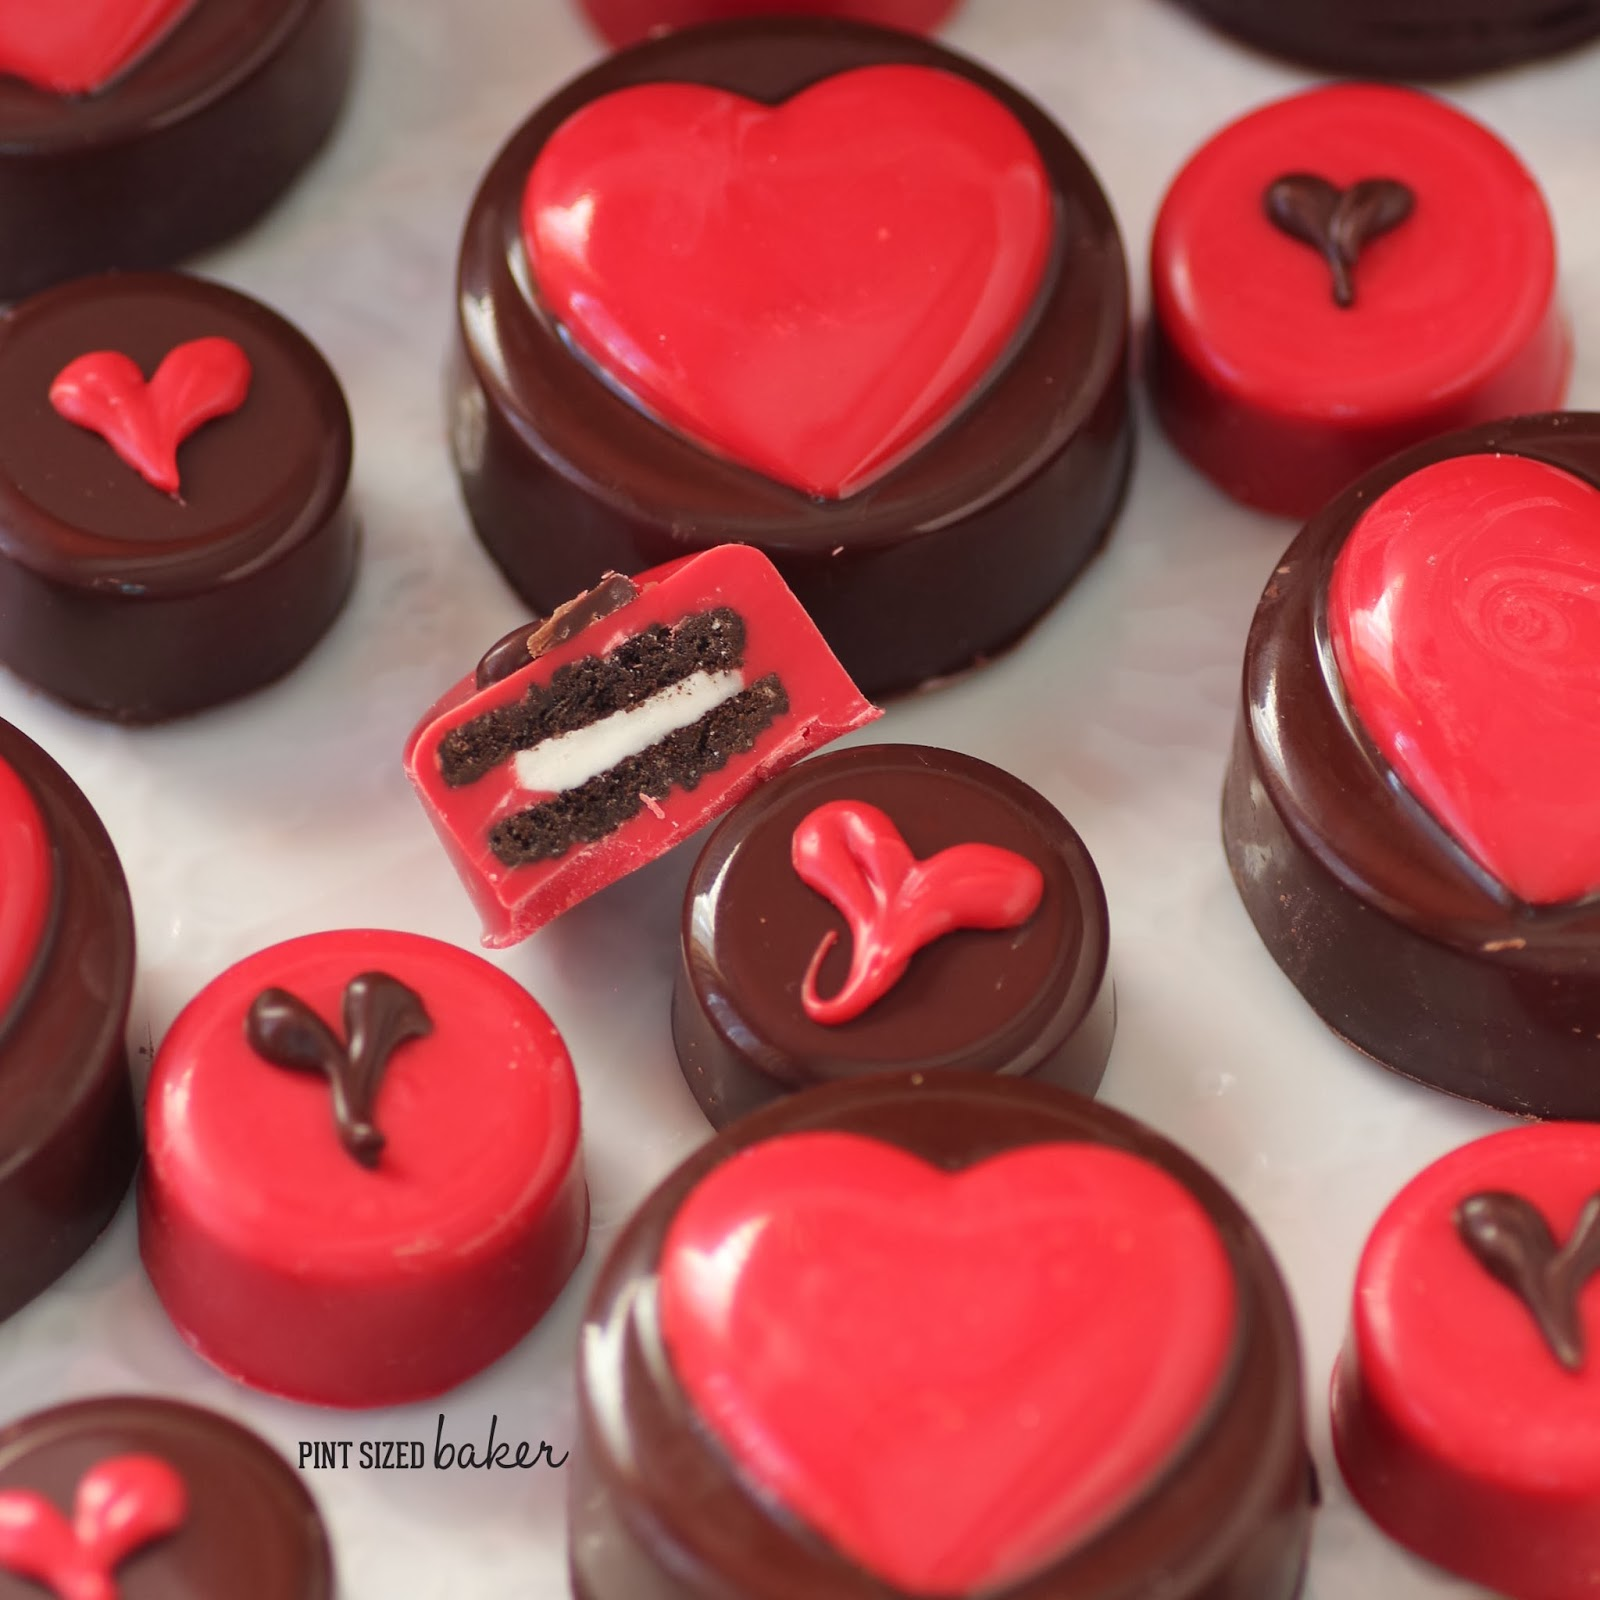 Chocolate Covered Oreo S For Valentine S Day Pint Sized Baker